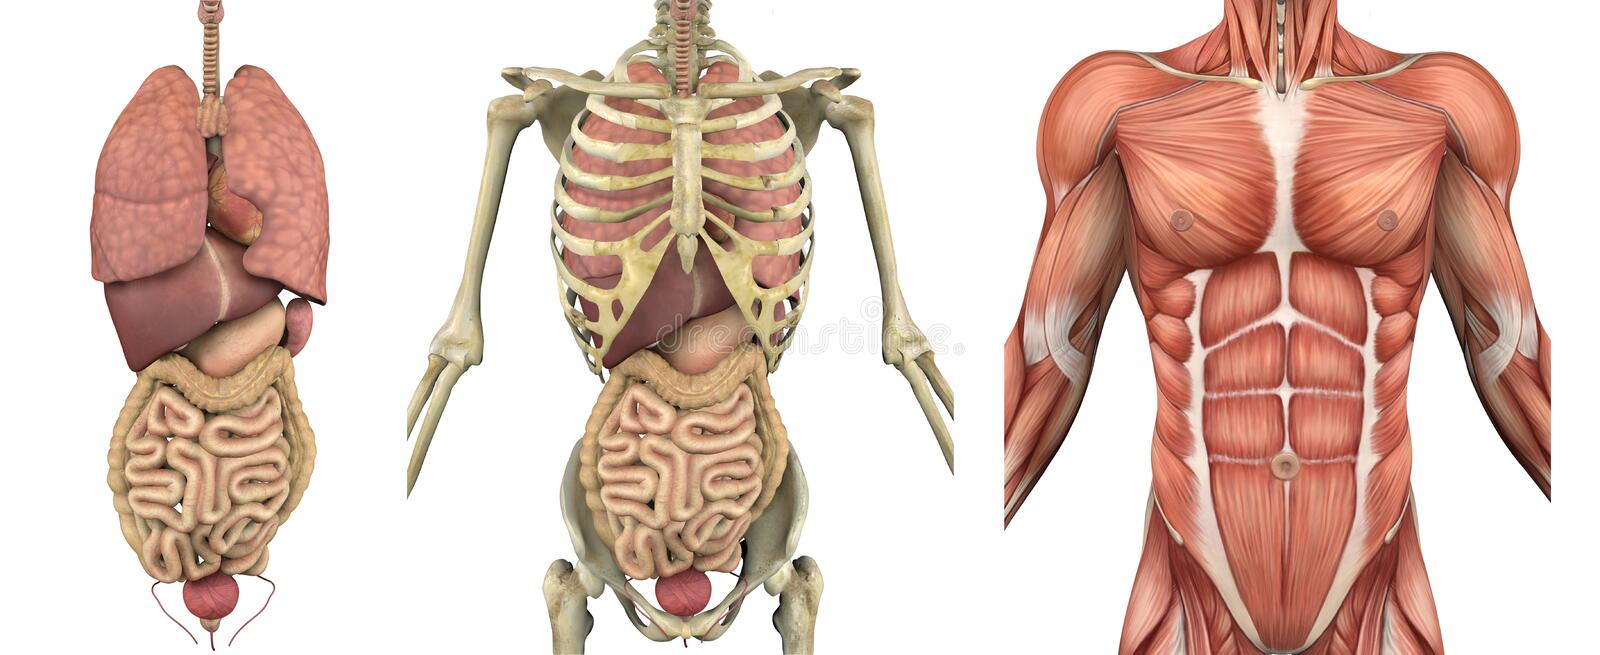 Anatomical Overlays - Male Torso With Organs Stock Illustration ...